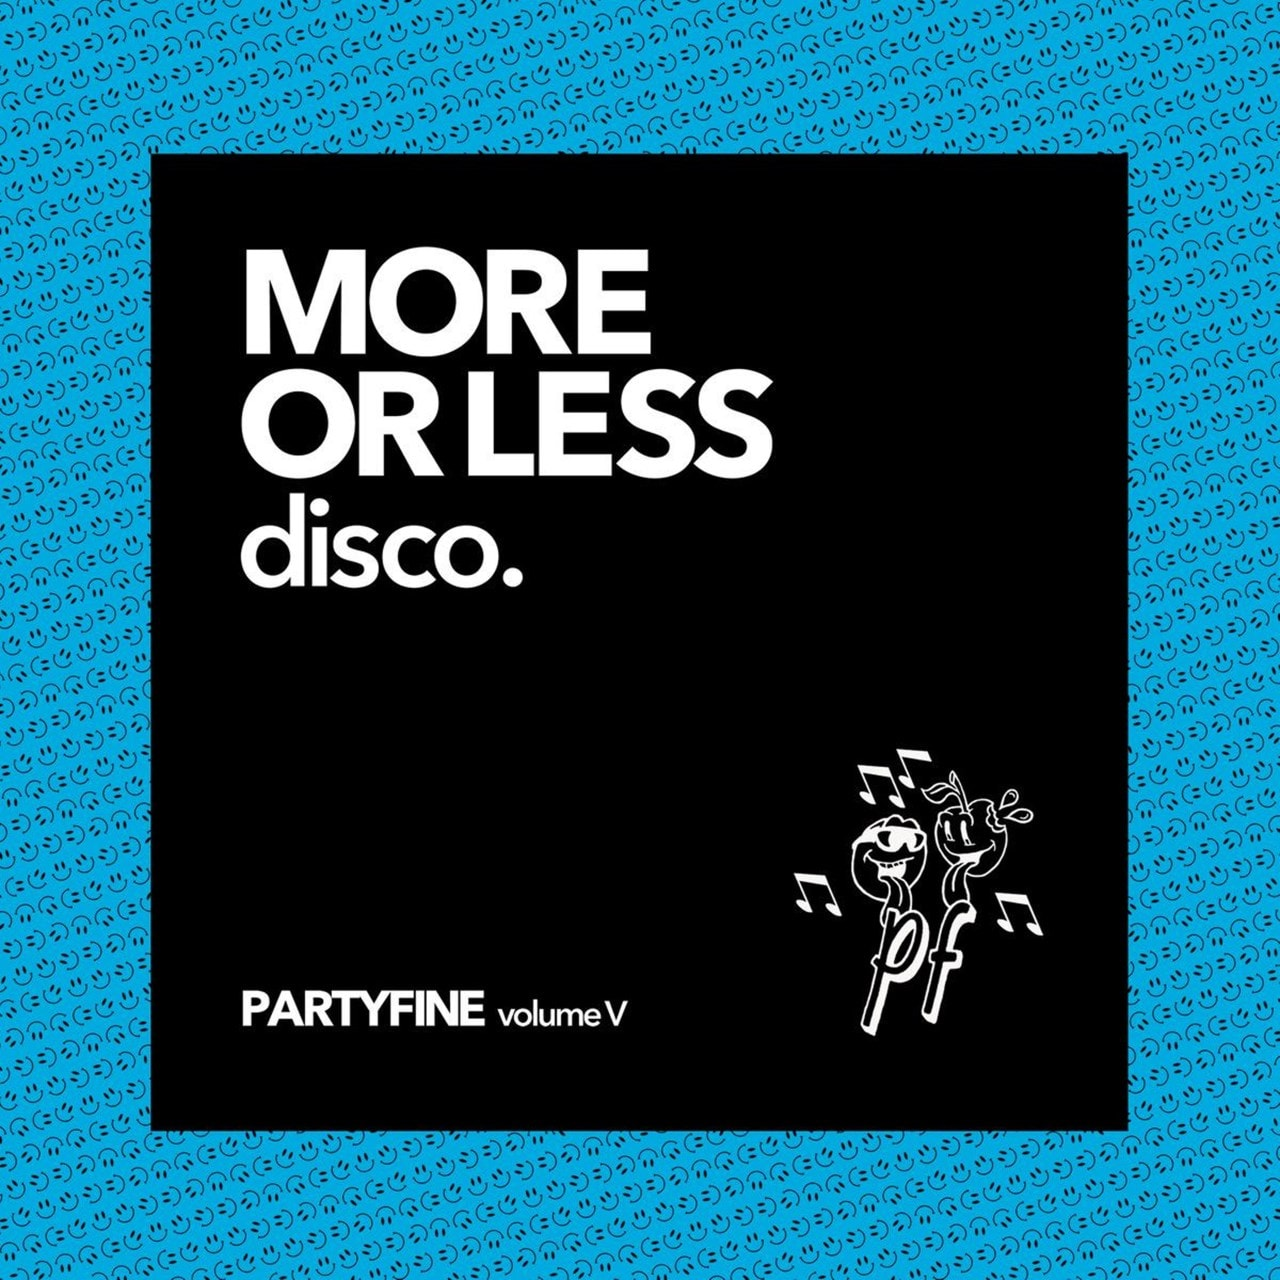 More Or Less Disco - 1